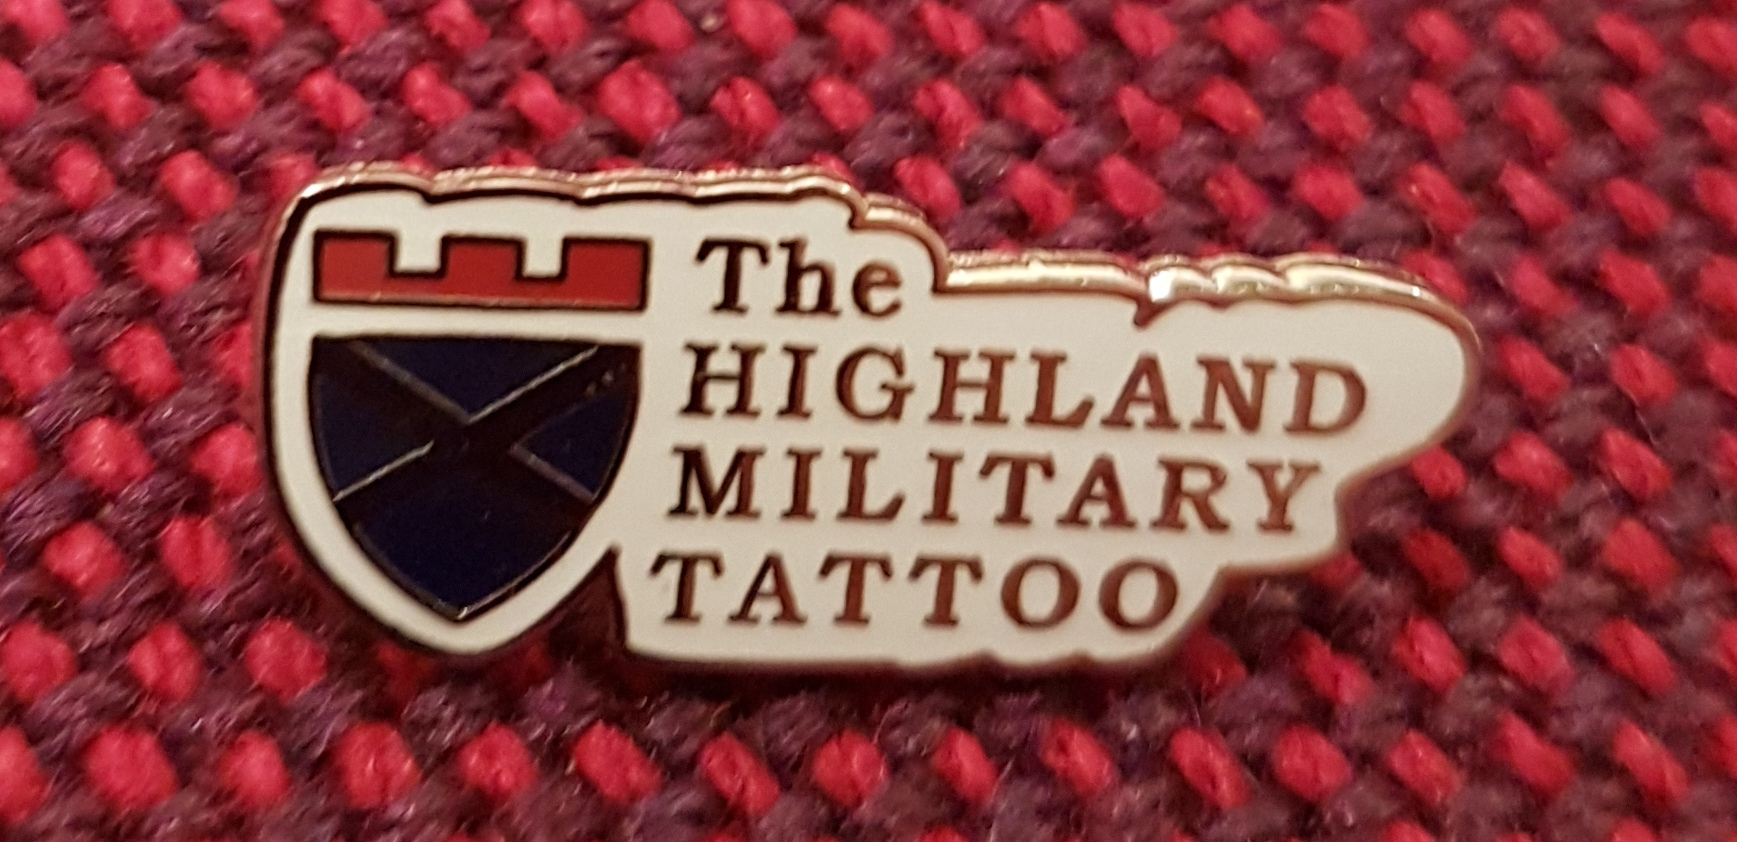 The Highland Military Tattoo Pin Badge